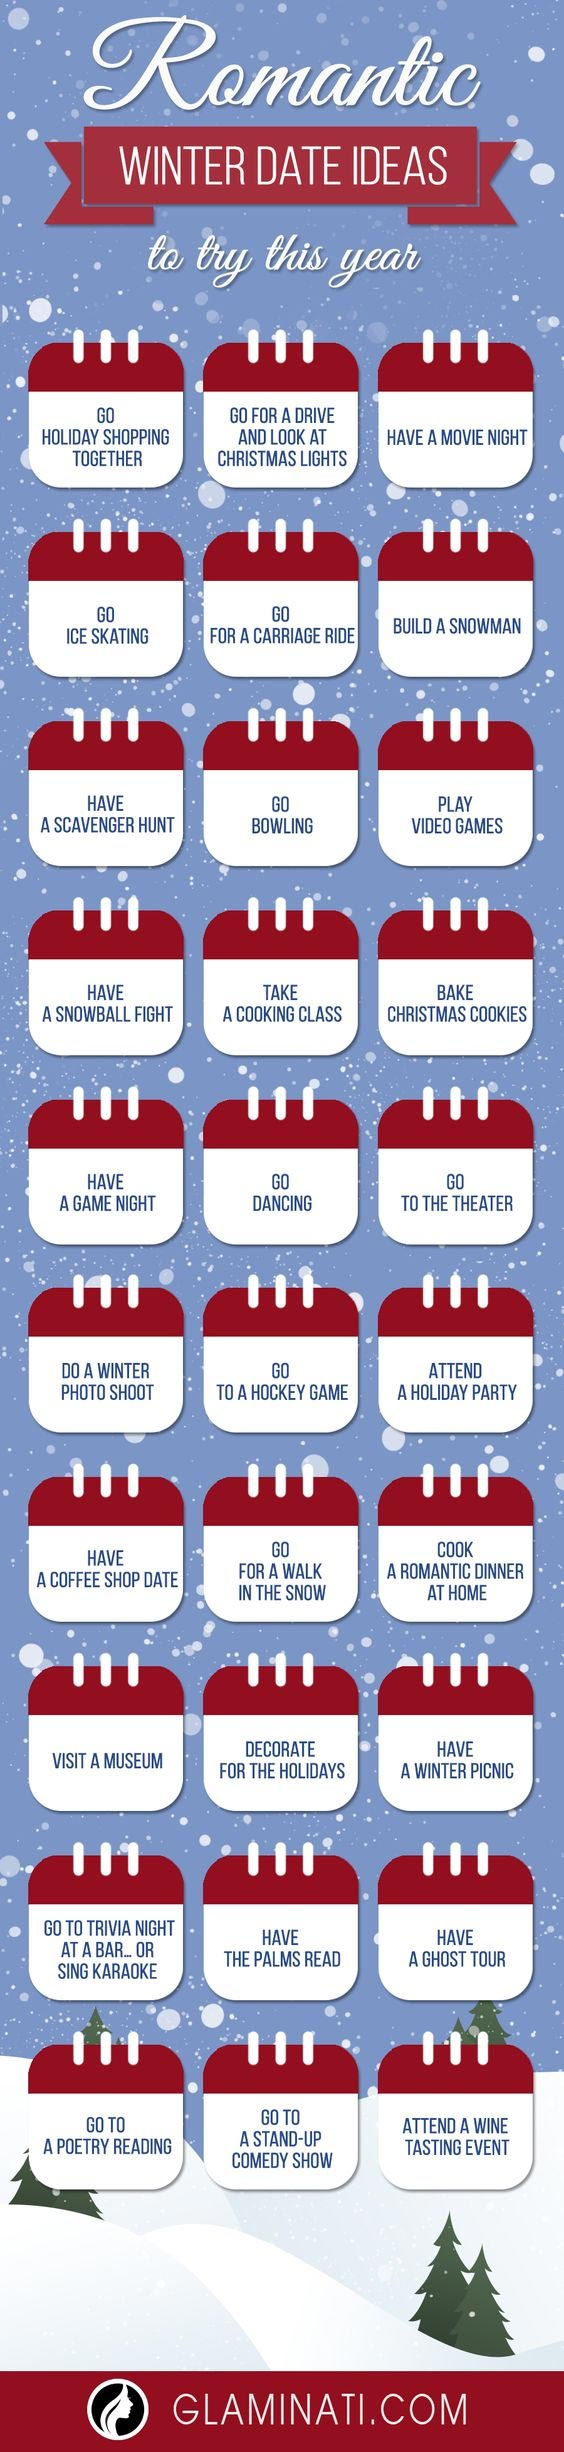 Winter Date Ideas To Try This Year